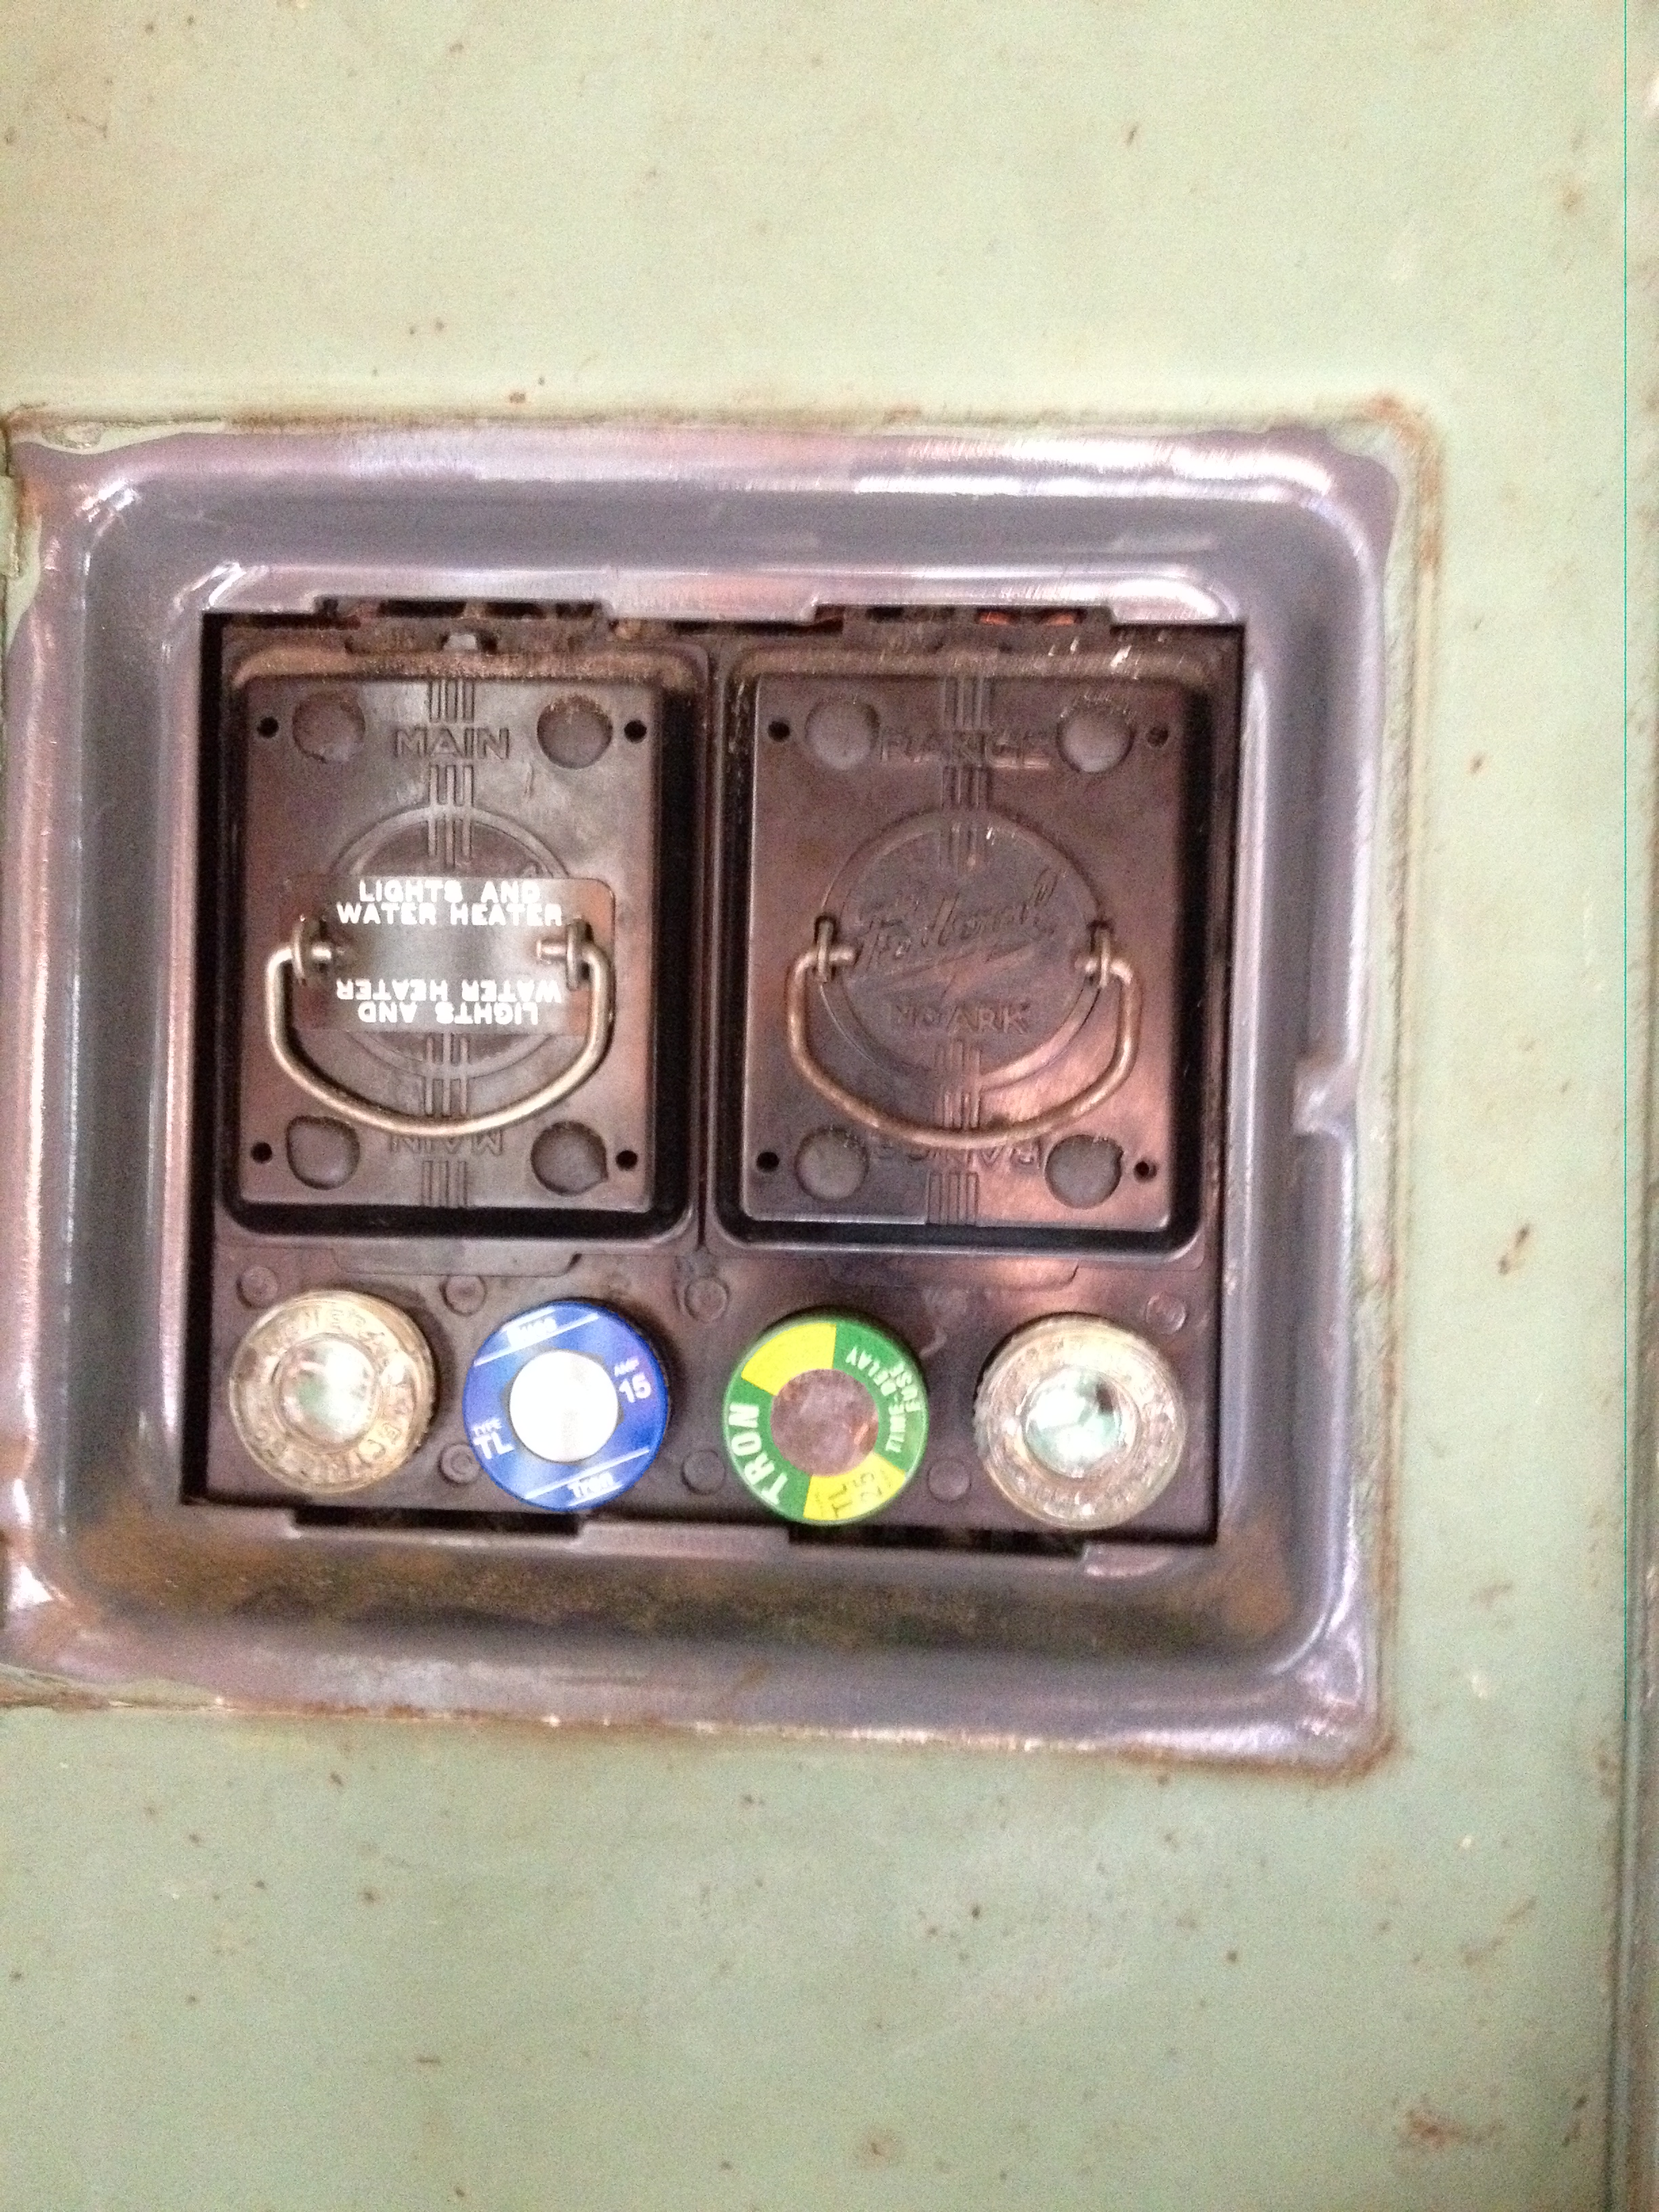 Service Changes Balanced Electric Screw In Fuse Box Pull Outs About Us